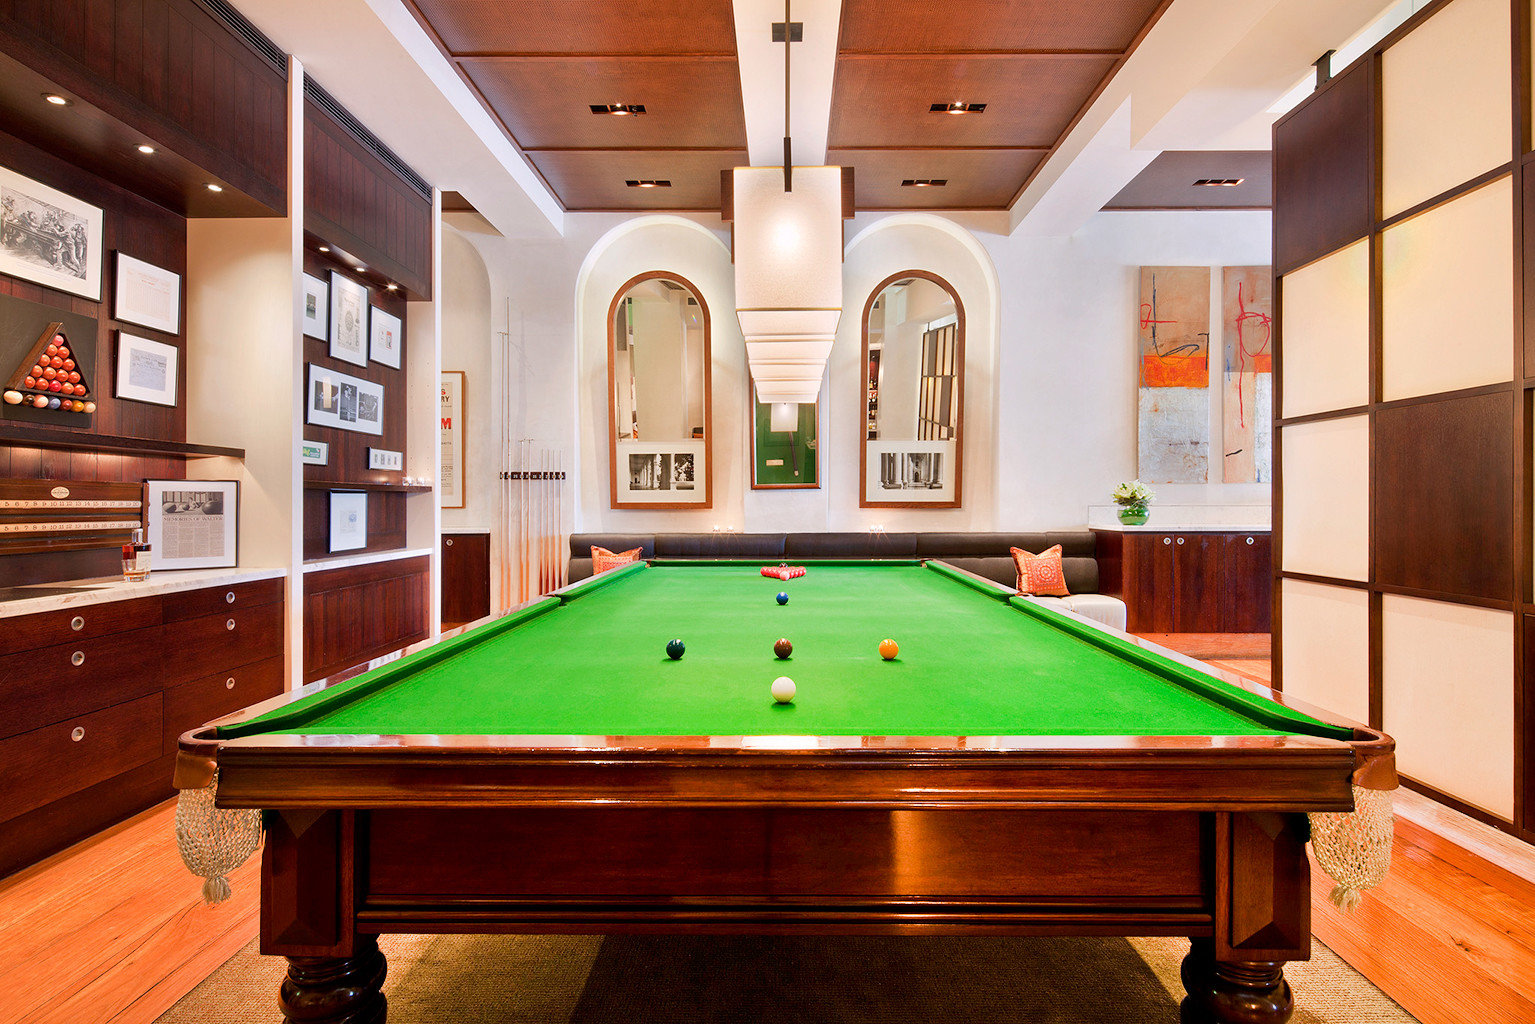 Entertainment Play Resort pool table poolroom billiard room pool ball recreation room carom billiards cue sports green billiard table scene indoor games and sports sports games gambling house